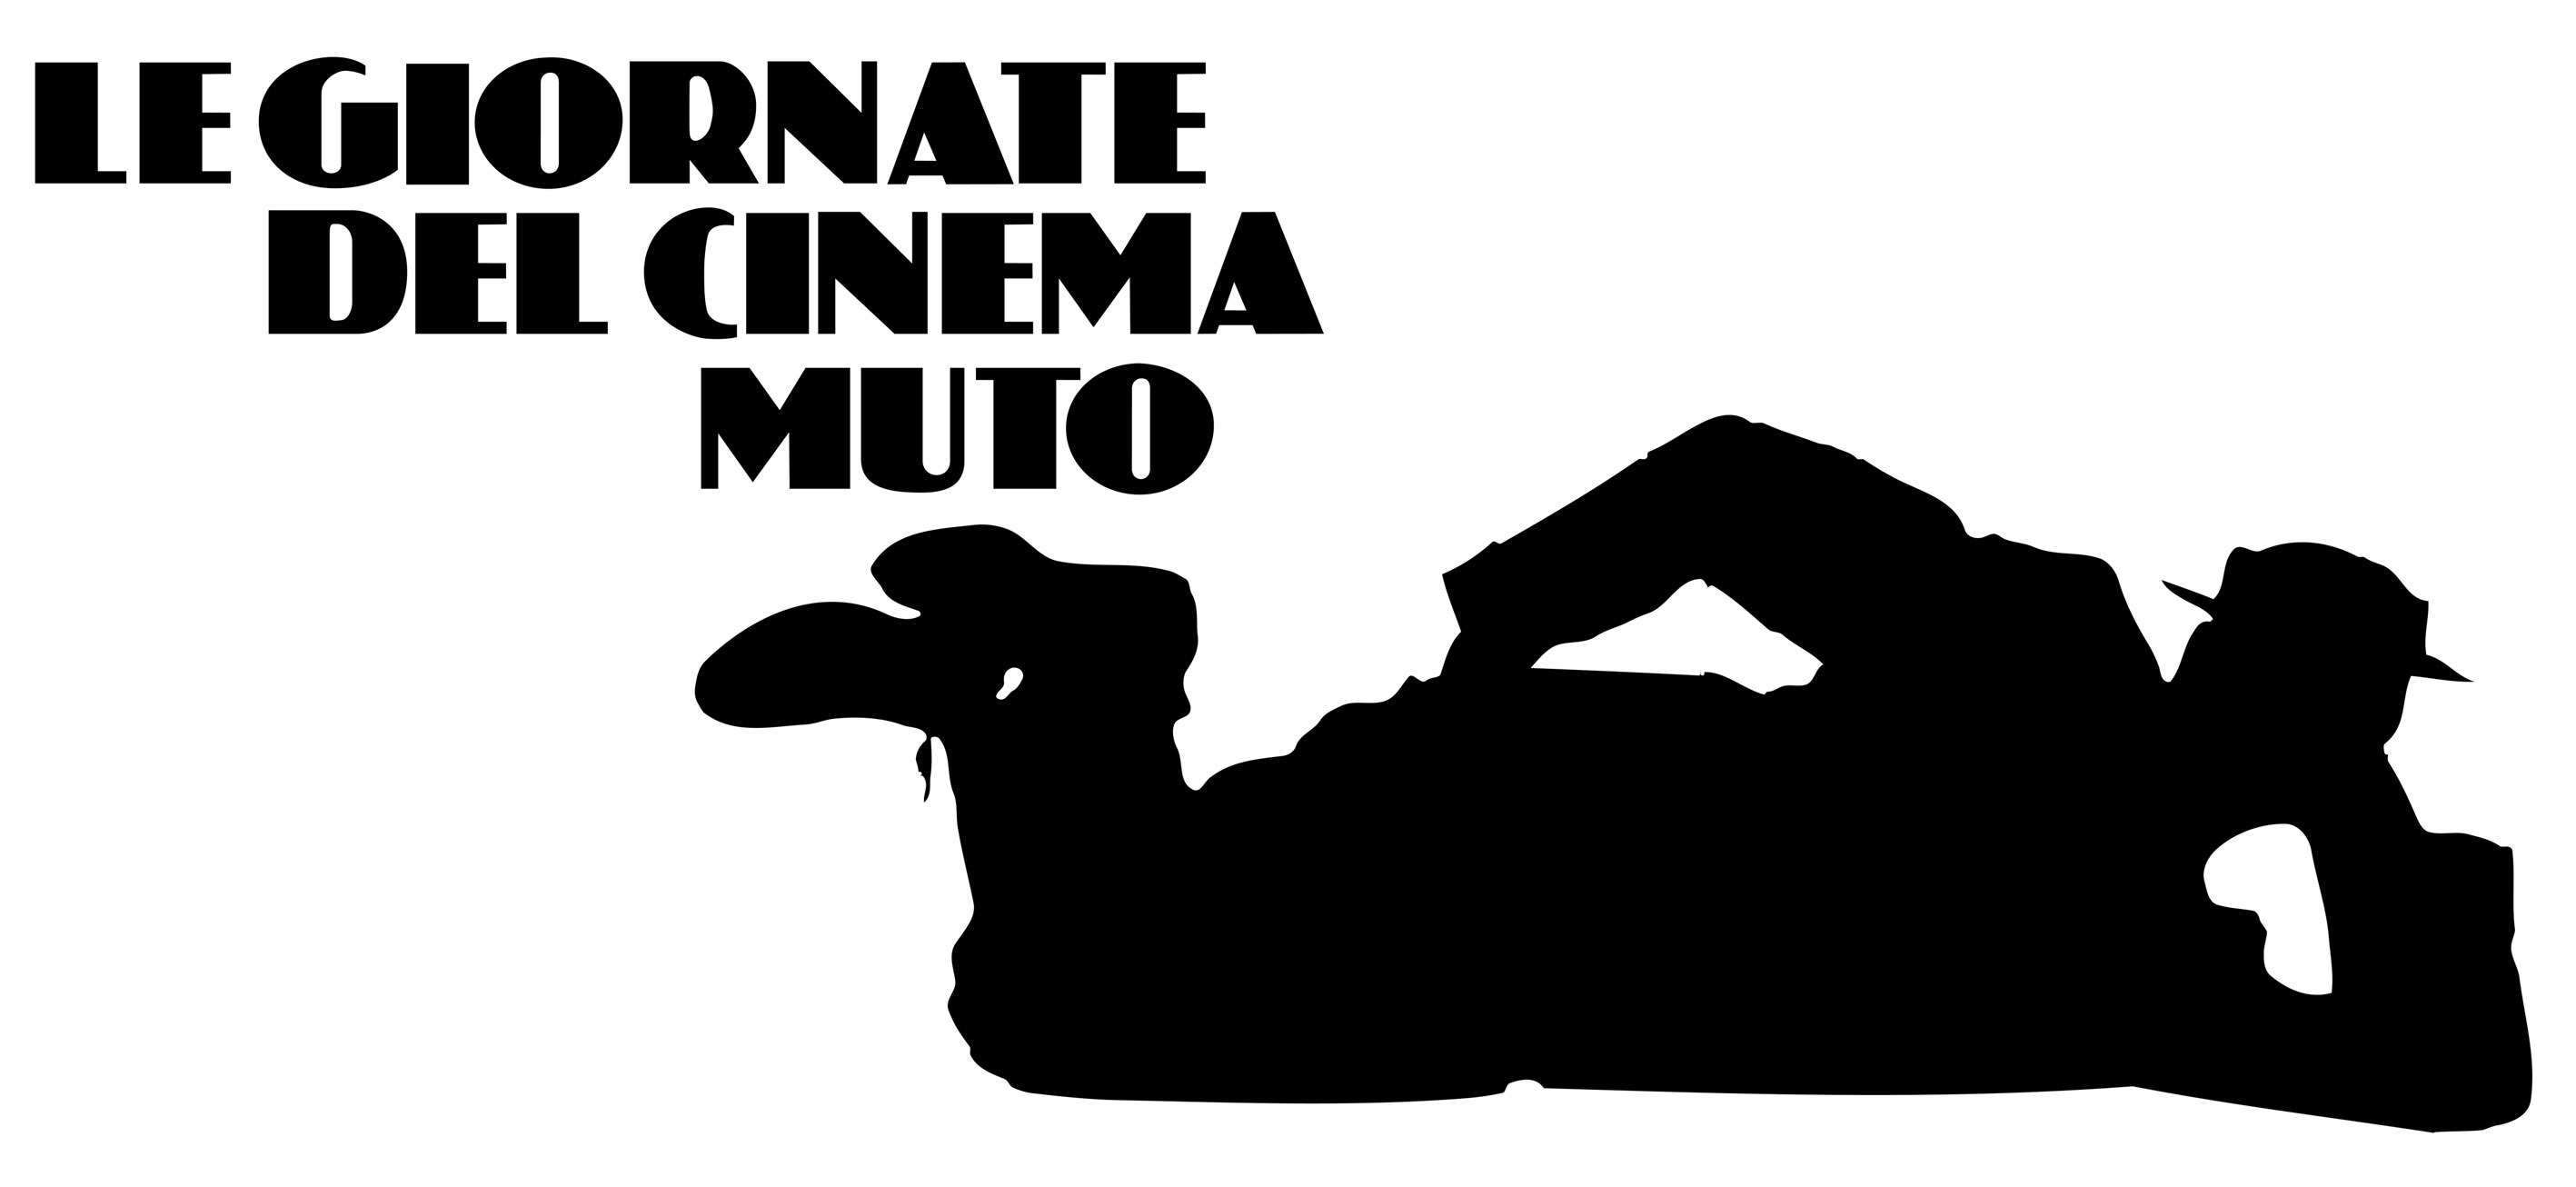 Nightly Hallucinations: Sleeping at Le Giornate del Cinema Muto